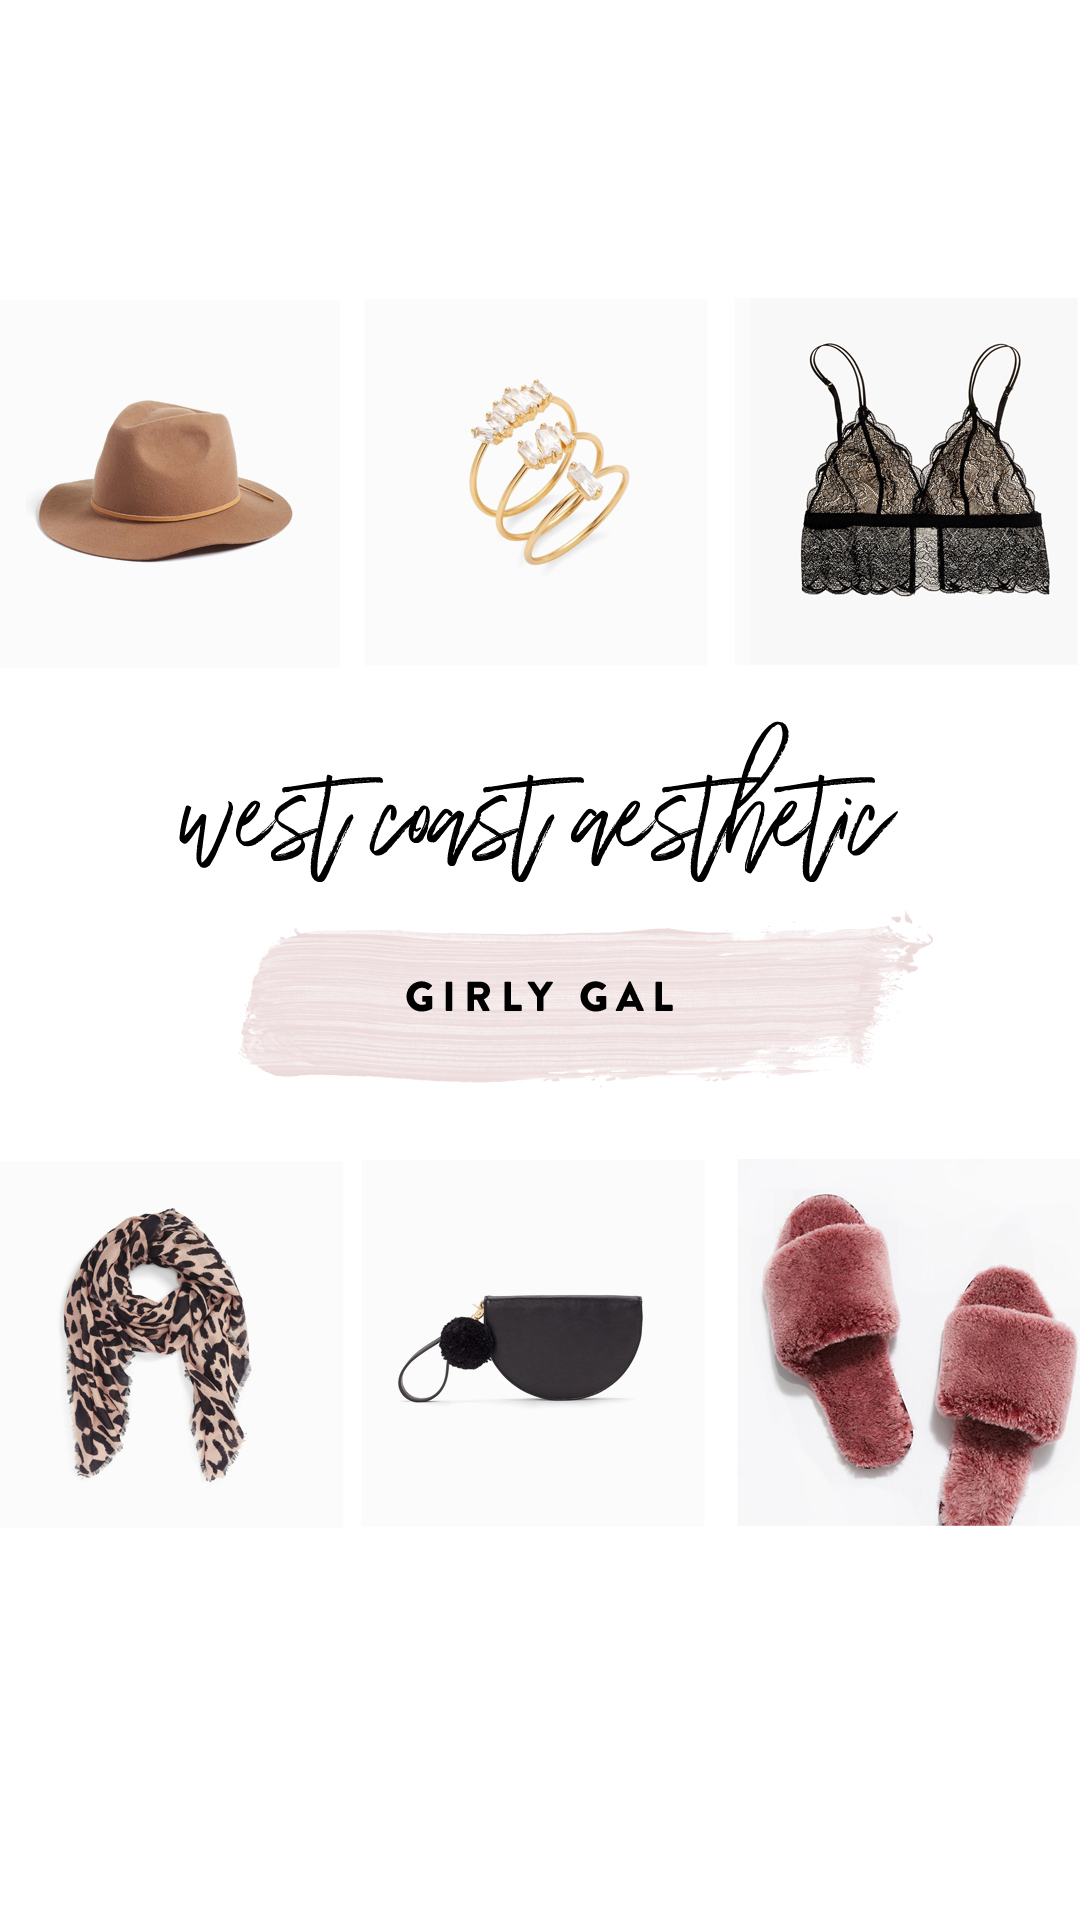 1.   Wool fedora hat   | 2.   Rings   | 3.   Bralette     | 4.   Leopard scarf   | 5.   Wristlet bag     | 6.   Slippers